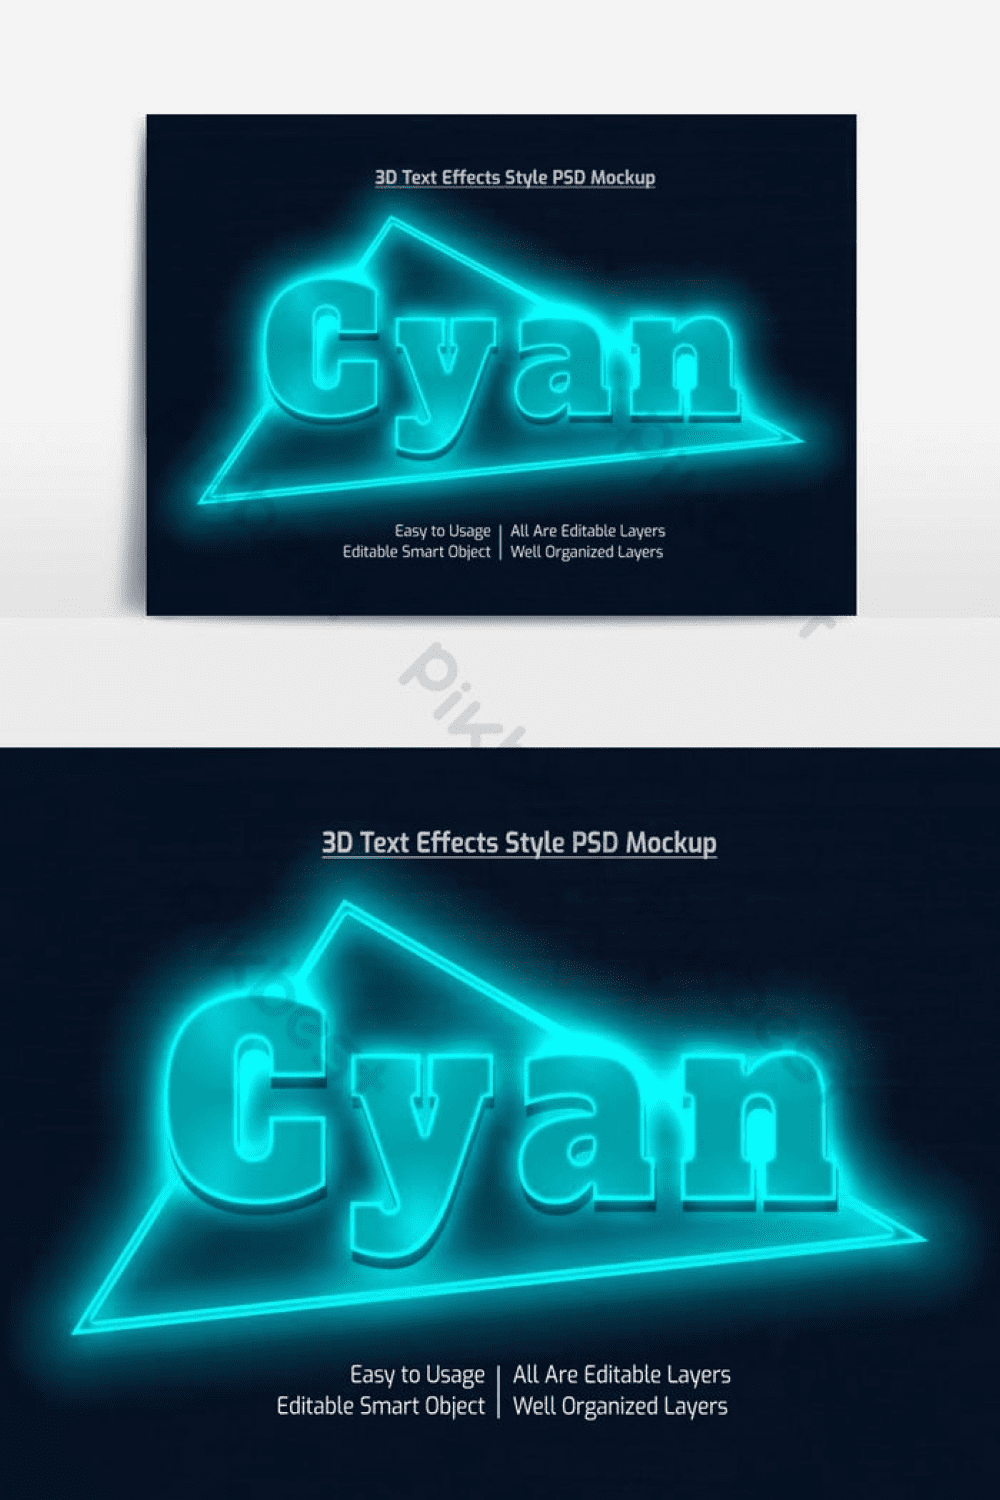 Cool neon composition in turquoise color.